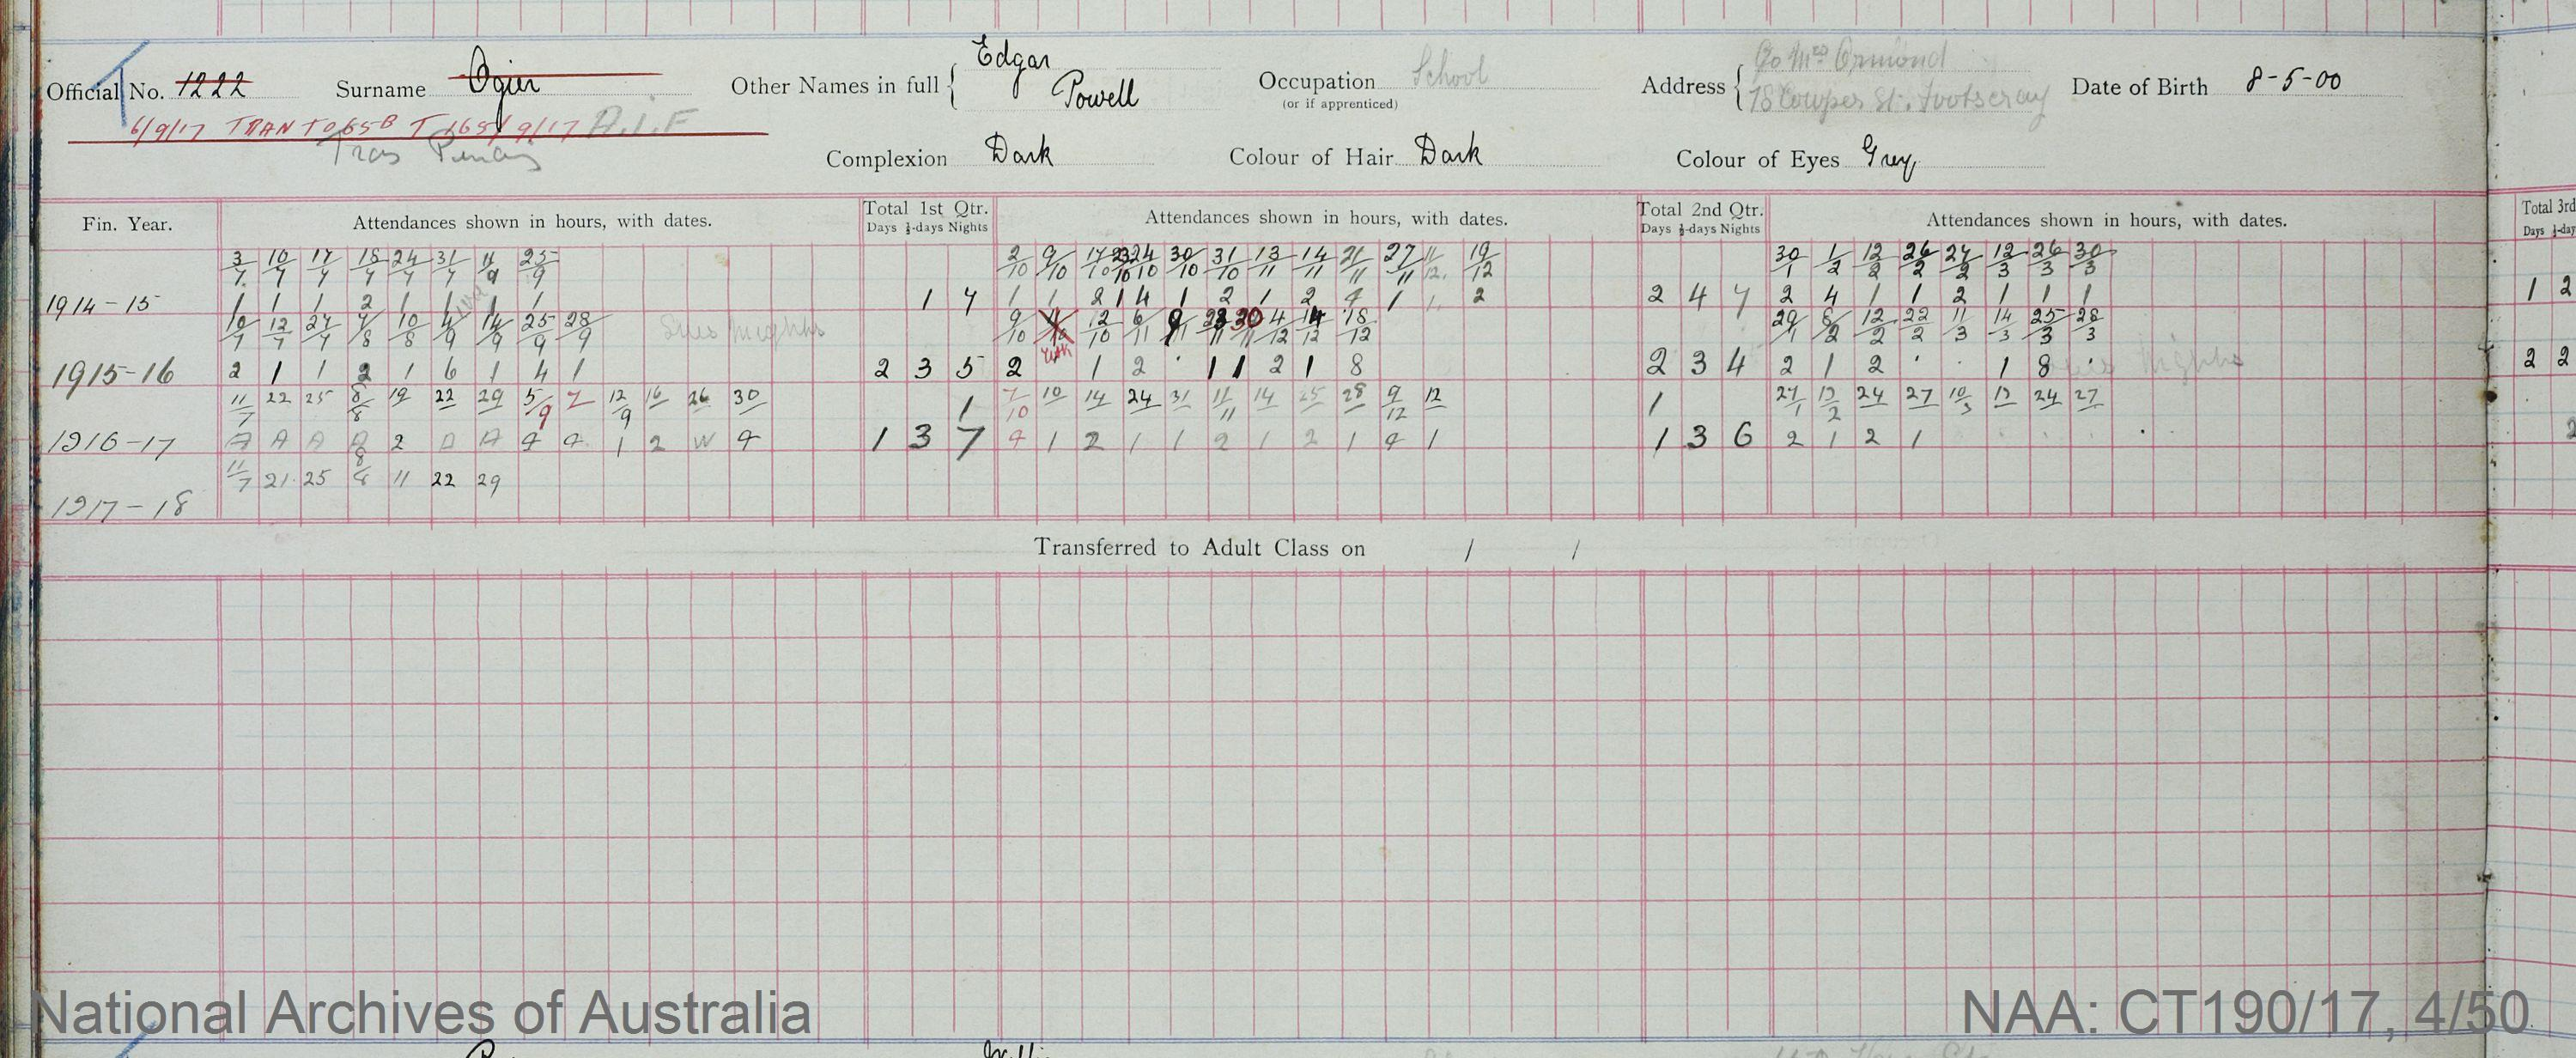 SURNAME - OGIER;  GIVEN NAME(S) - Edgar Powell;  OFFICIAL NUMBER - 1222;  DATE OF BIRTH - 8 May 1900;  PLACE OF BIRTH - [Unknown];  NEXT OF KIN - [Unknown] ;  SERVICE/STATION - Williamstown Victoria;  REGISTRATION DATE - 2 March 1914